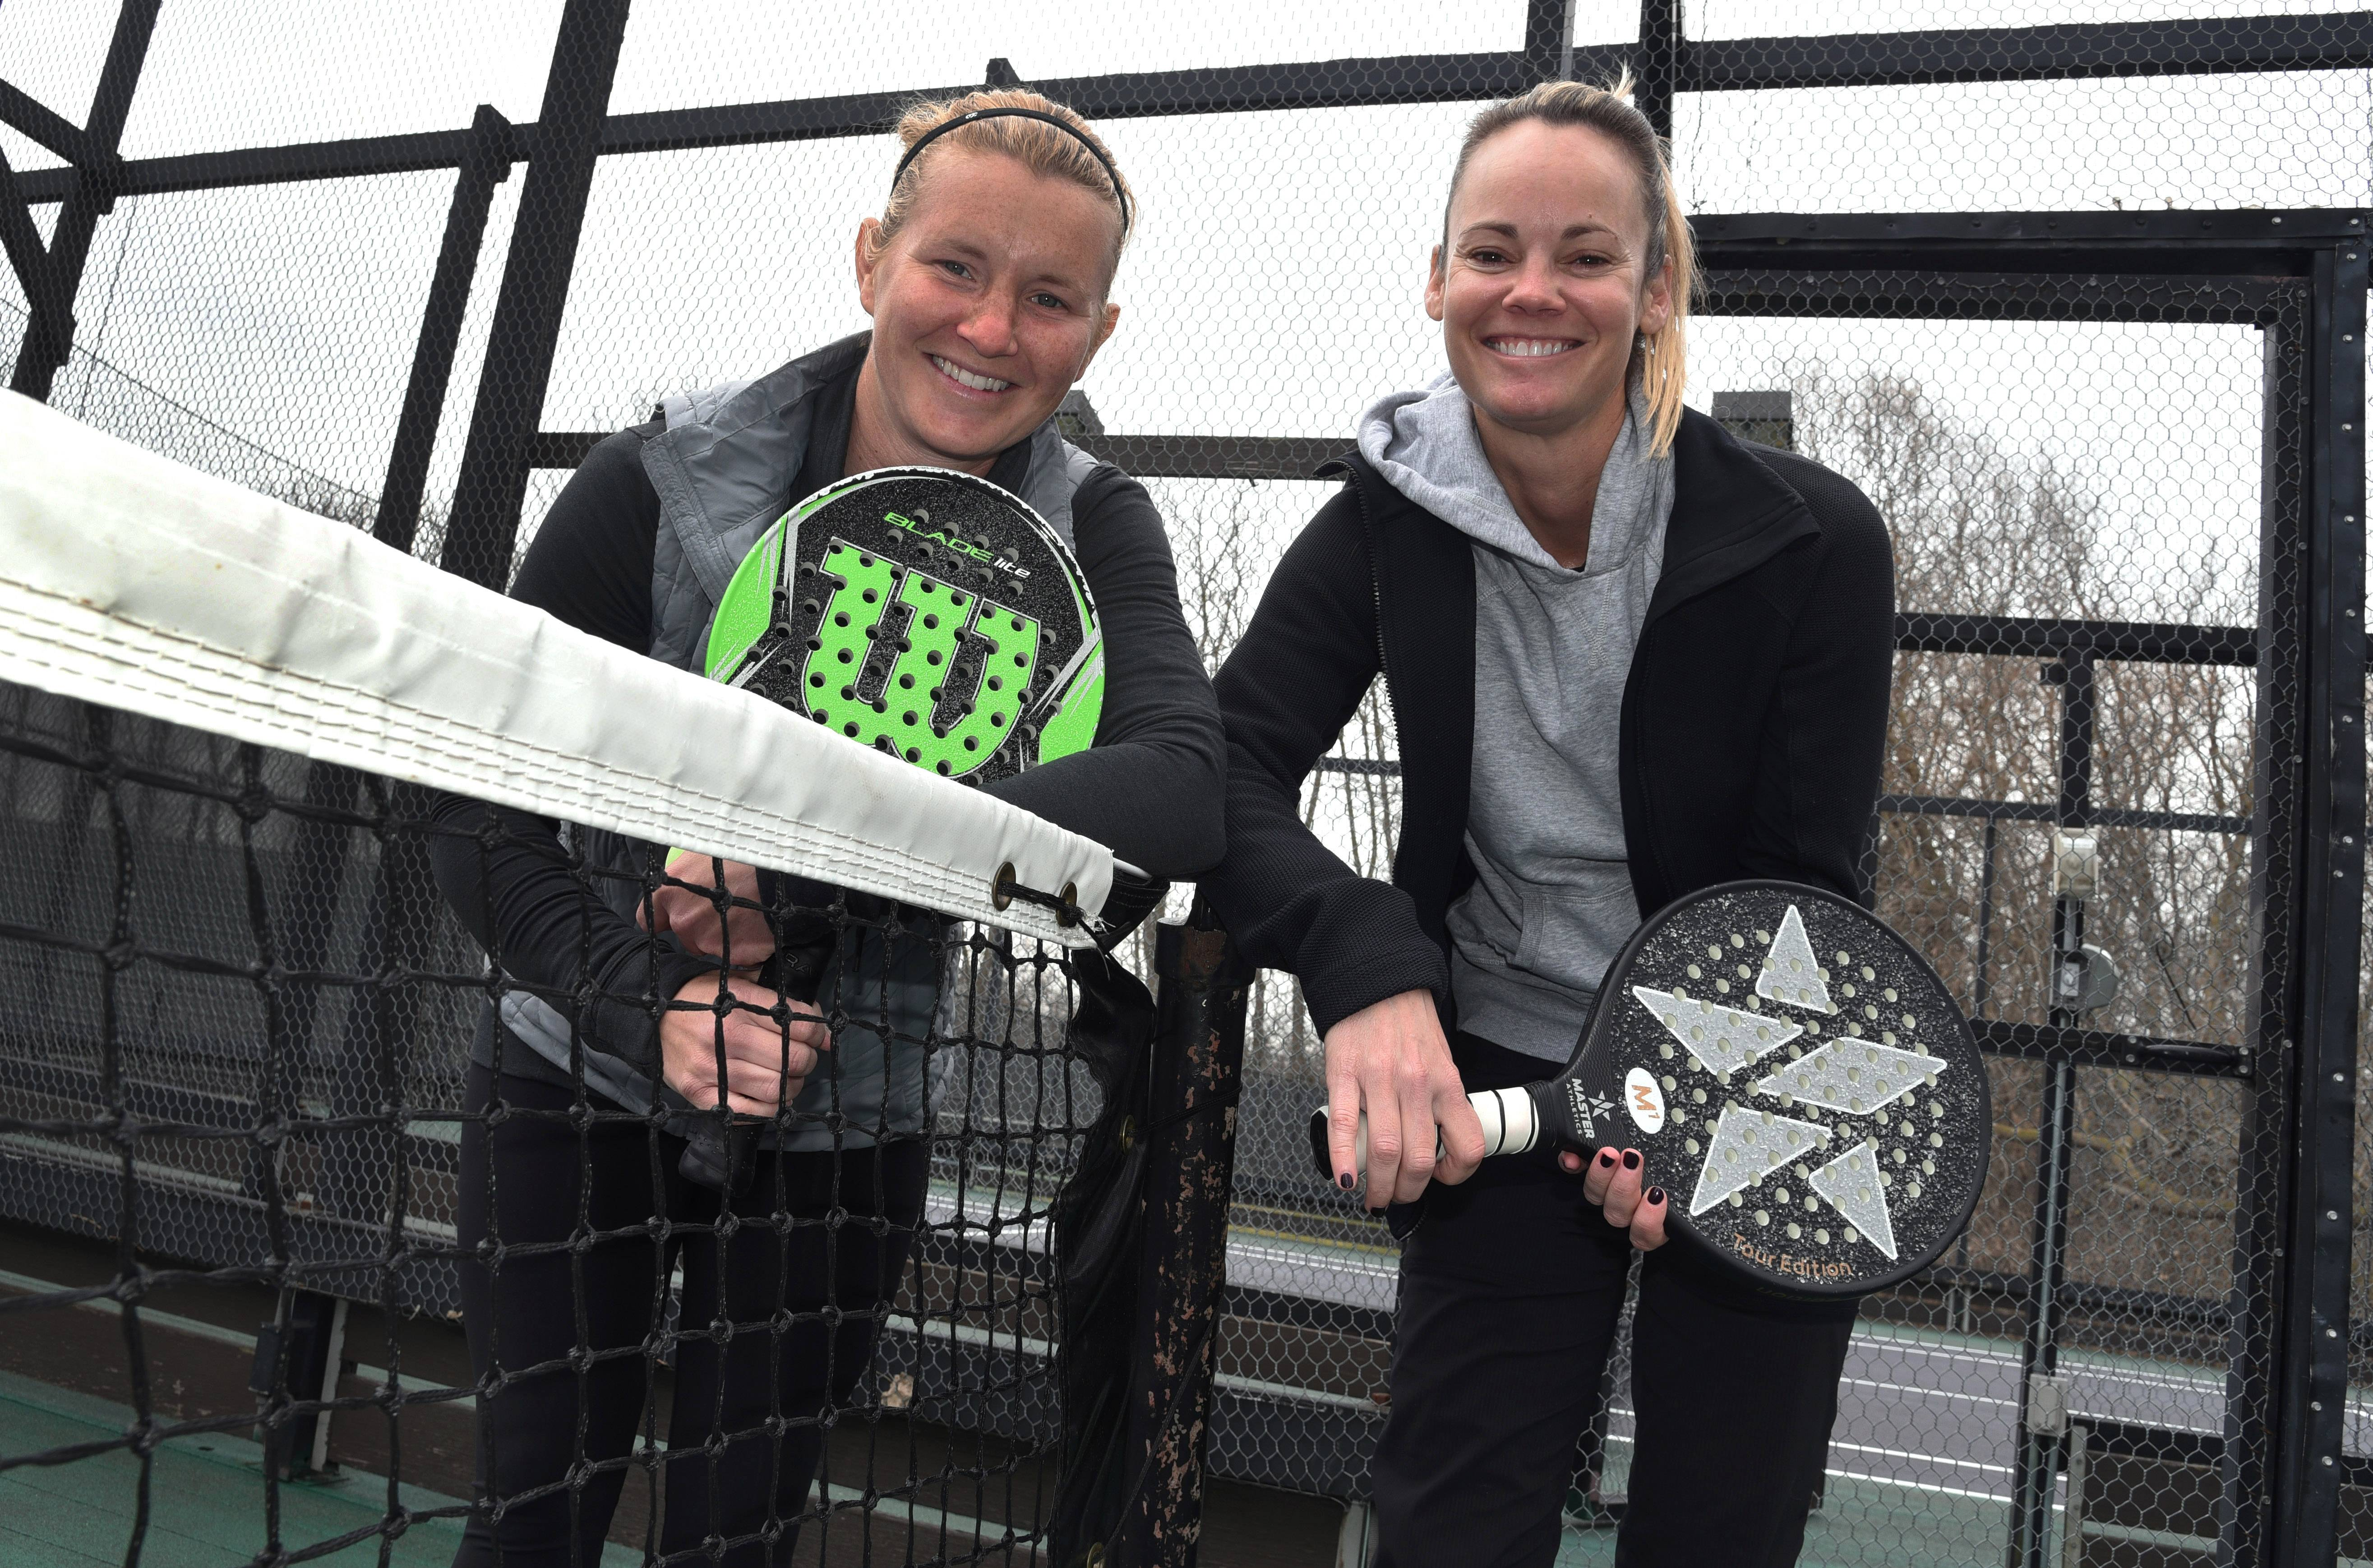 The suburban platform tennis team of Alison Morgan, left, and Laura Berendt won the Hinsdale Challenge, the 2018 National Ranking and Viking President's Cup Qualifier.